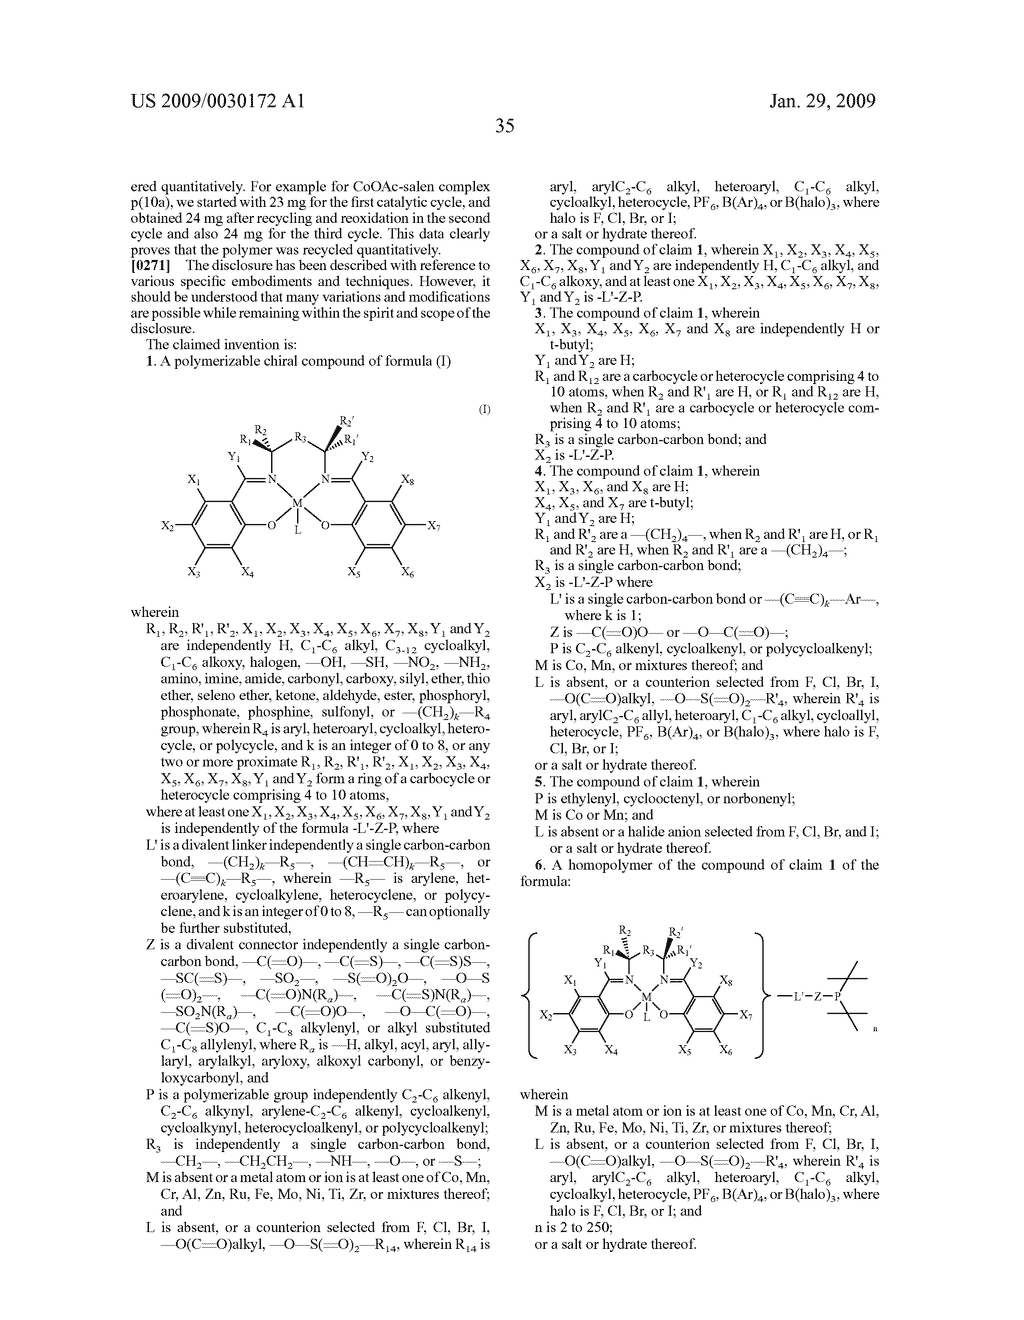 POLYMERIC SALEN COMPOUNDS AND METHODS THEREOF - diagram, schematic, and image 36